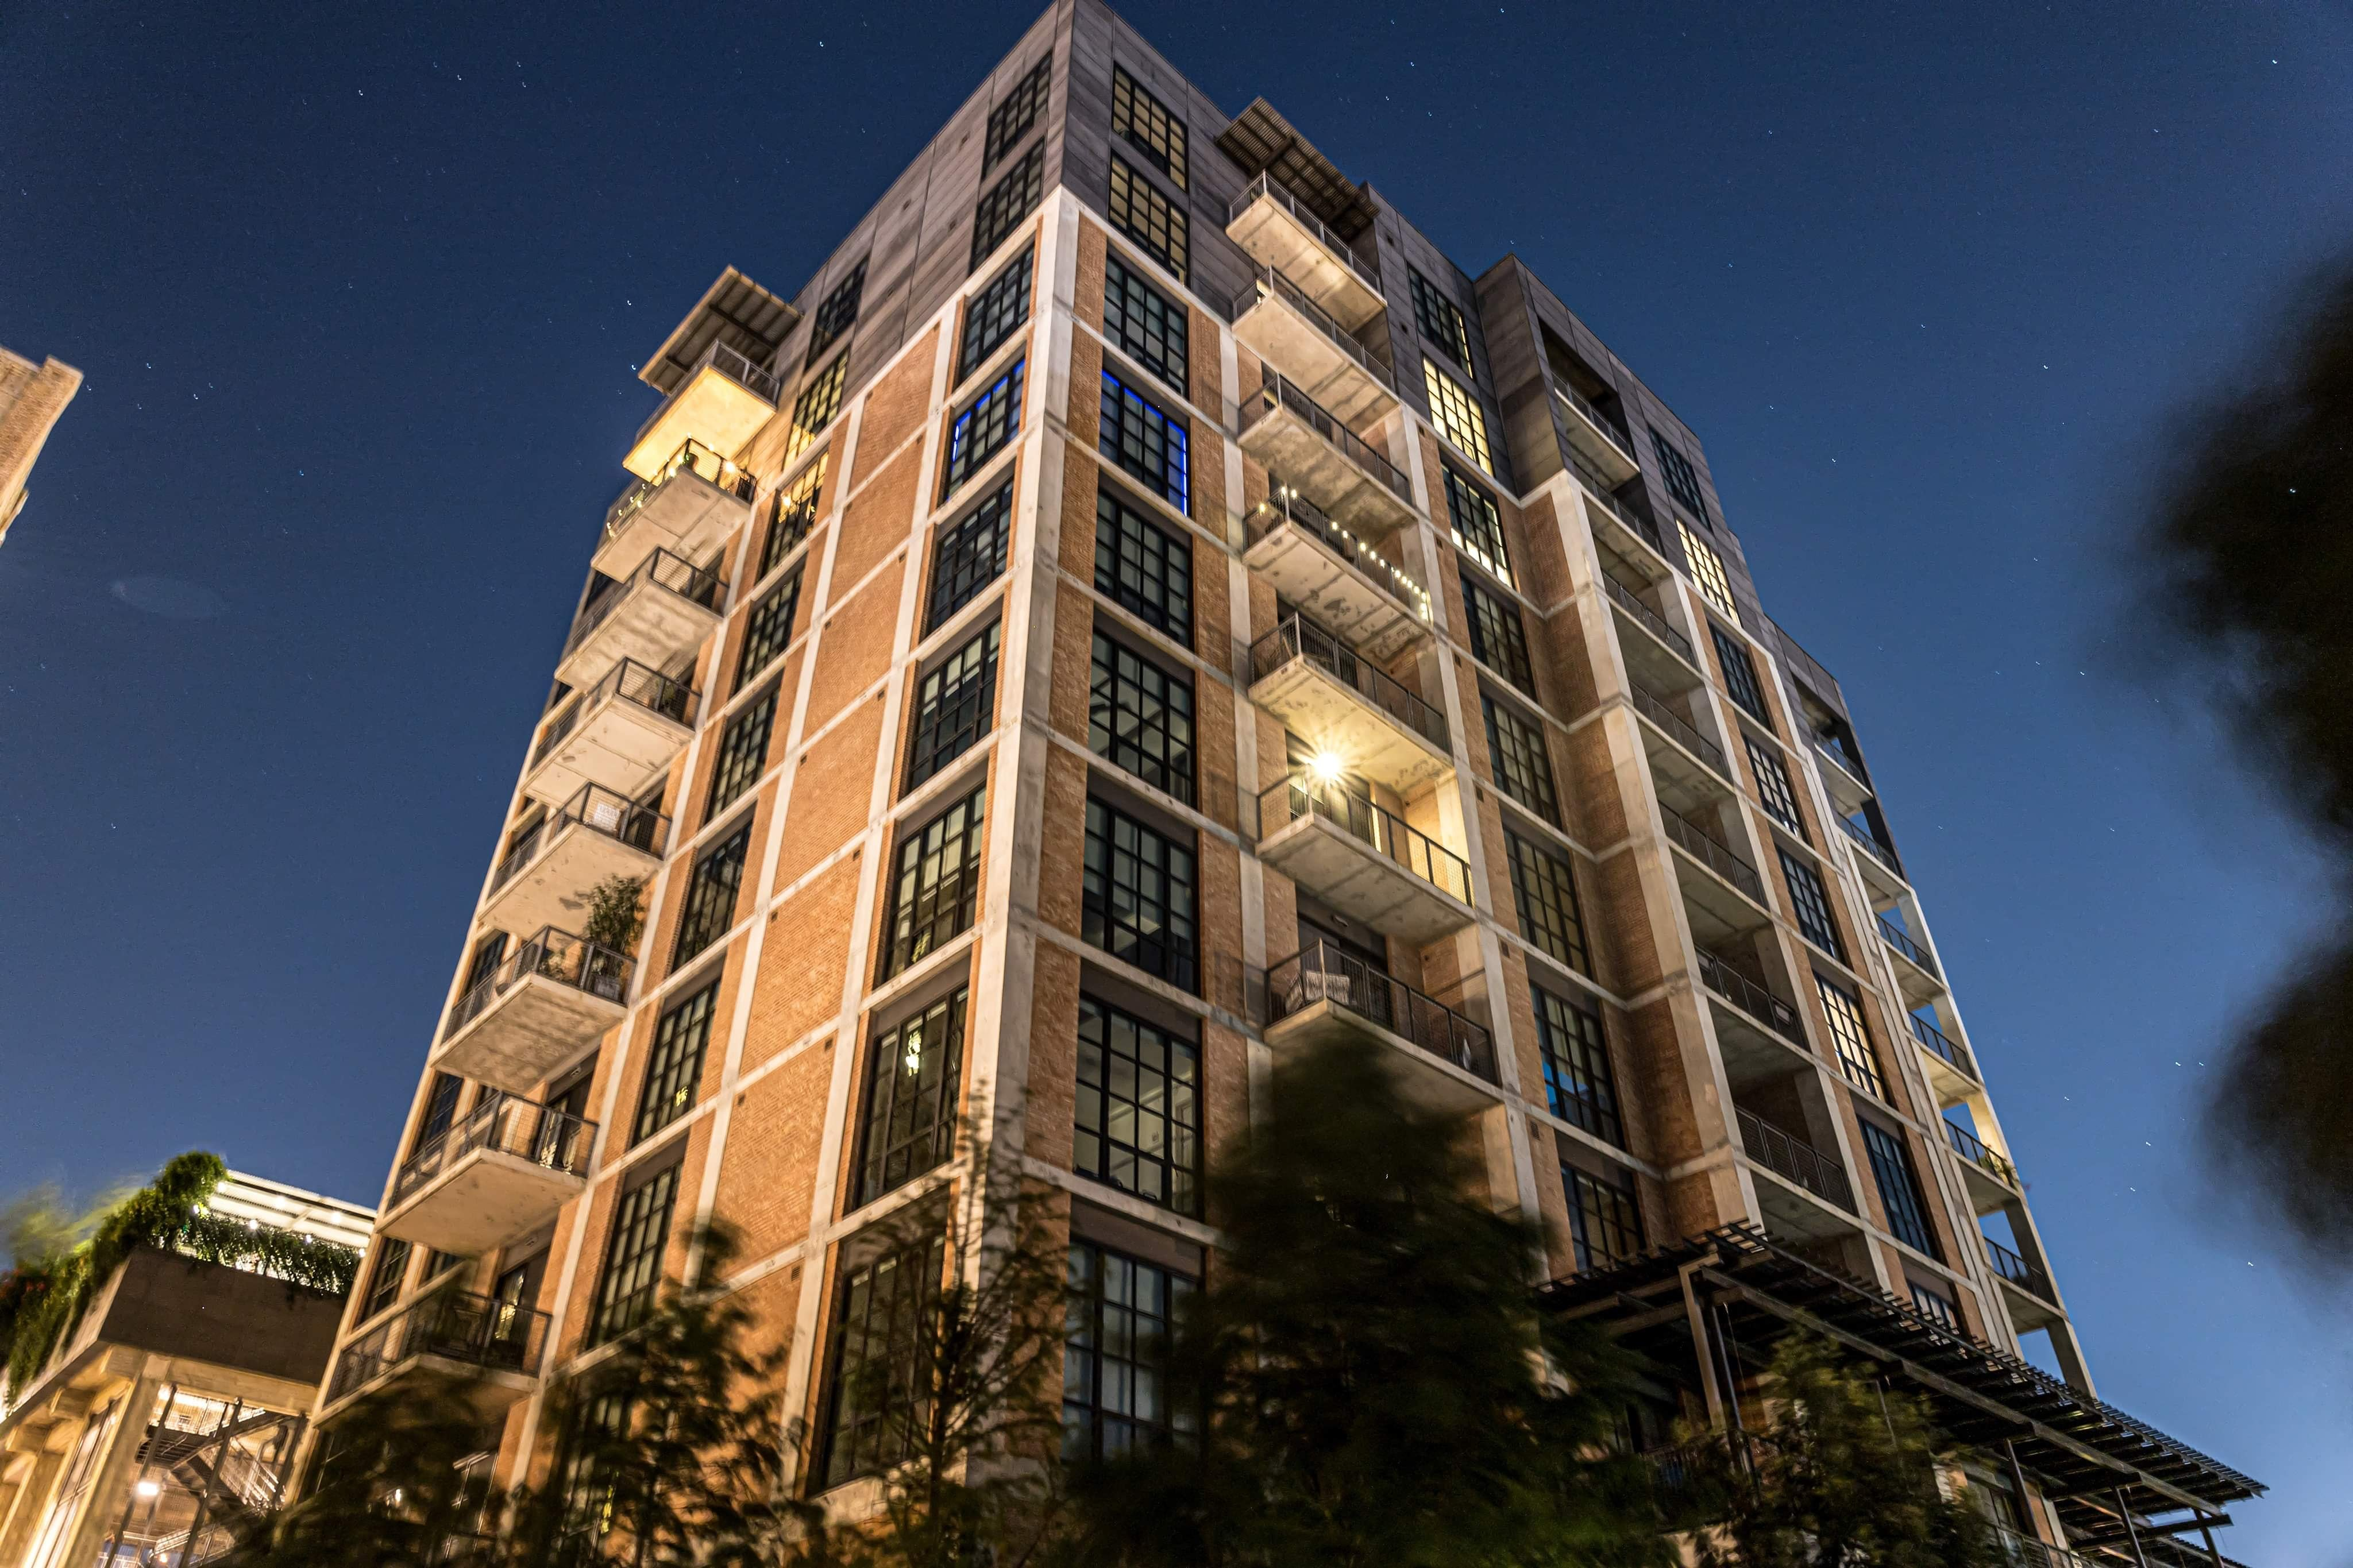 condo builidng - Converting your Condo to an investment property- what you need to know